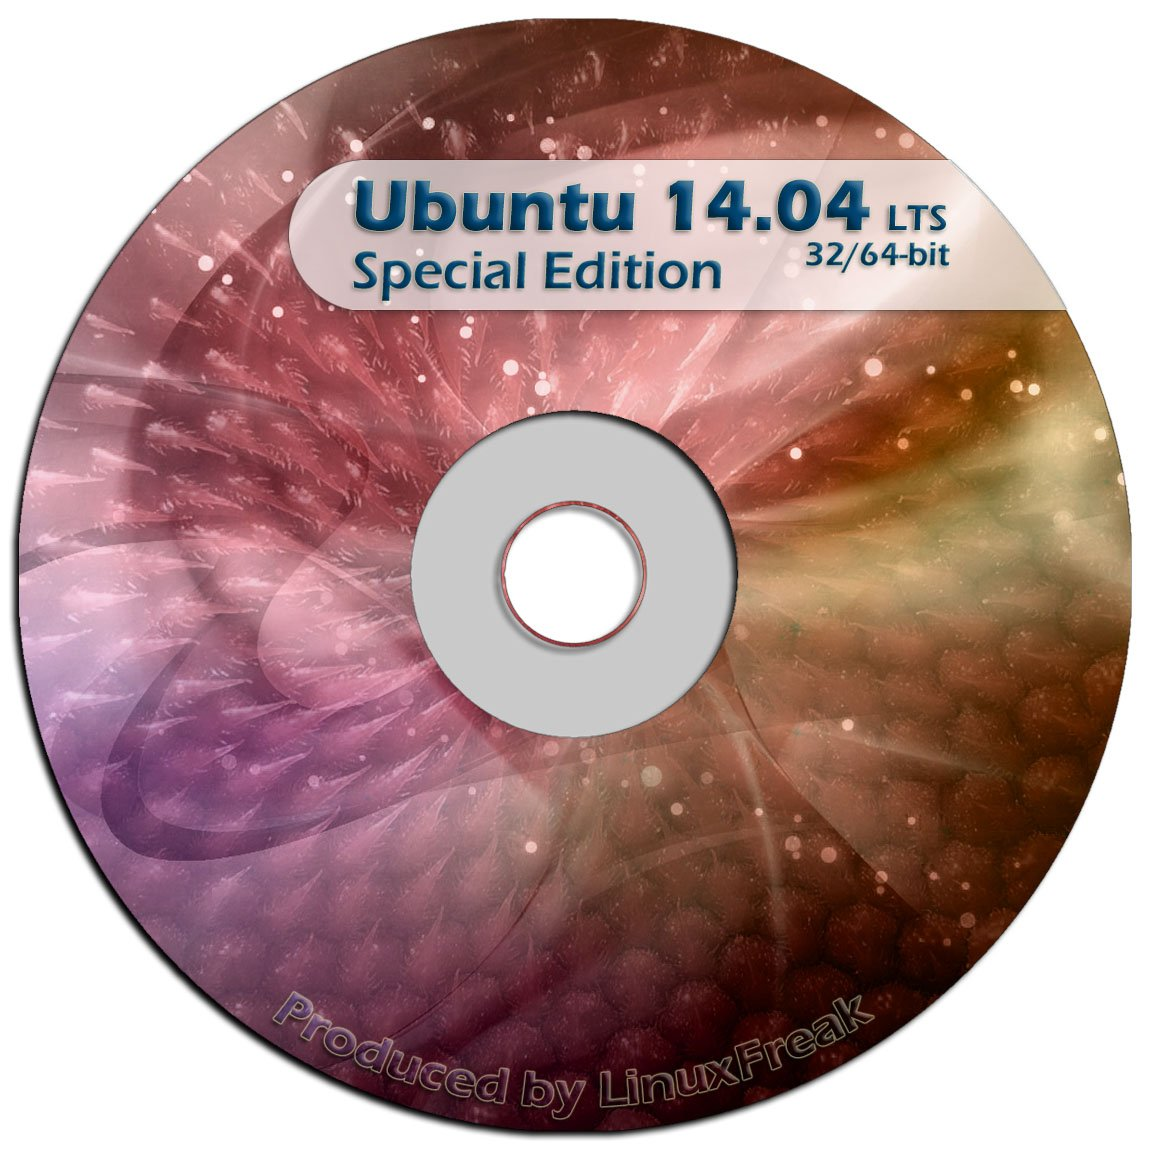 Ubuntu Linux 14.04 Special Edition DVD - Includes both 32-bit and 64-bit Versions - Long Term Support by LinuxFreak